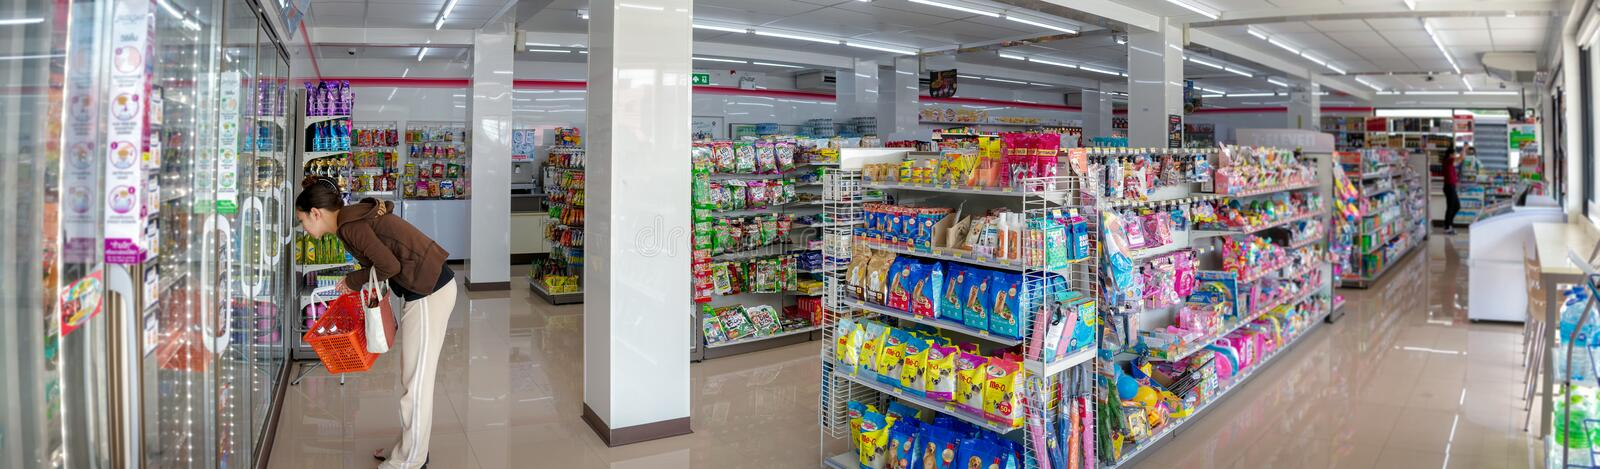 BANGKOK, THAILAND - APRIL 24: Unnamed female customer shops in the newly opened 7-Eleven convenient store in Chao Sua 69 plaza in royalty free stock photography